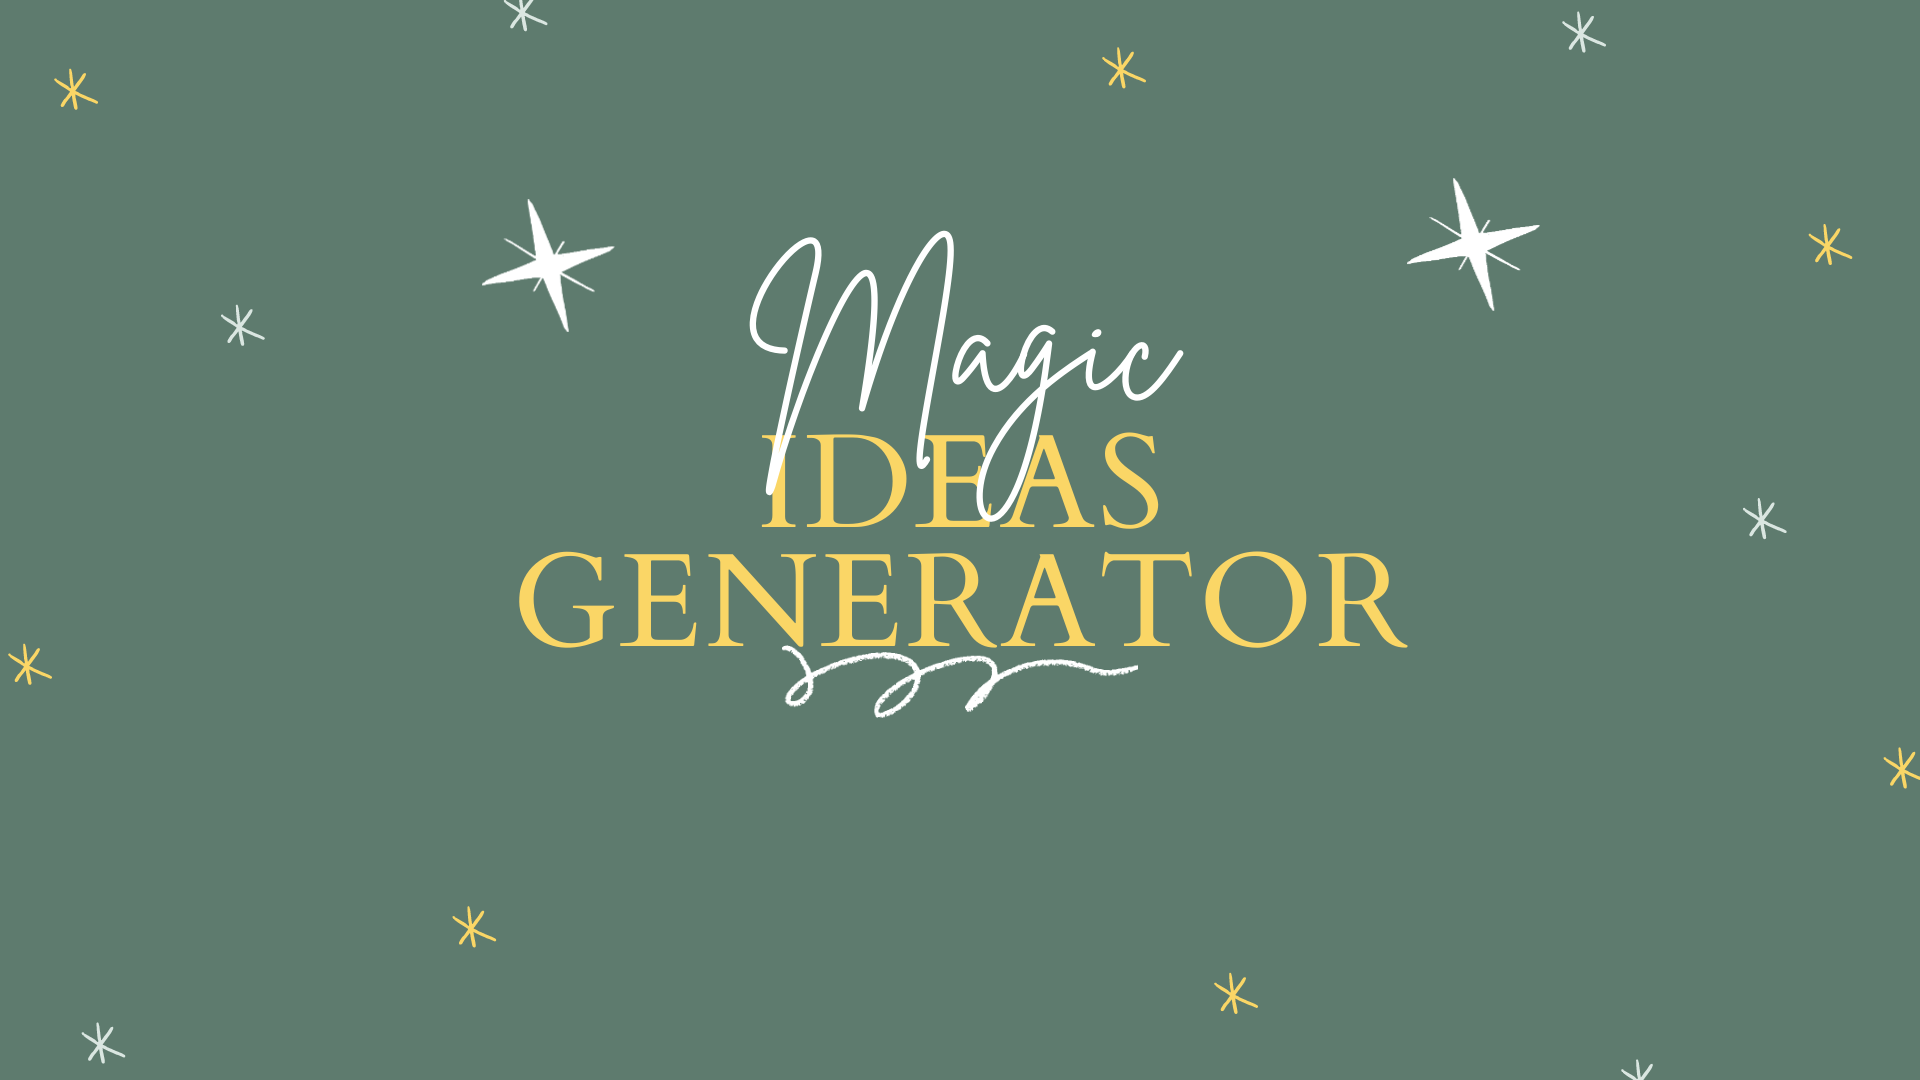 Green background. Title: Magic Ideas Generator is in the middle. Magic is in white script; the rest is in yellow capital letters. around the title are yellow, white, and light blue stars. There's a white squiggly line under the title.